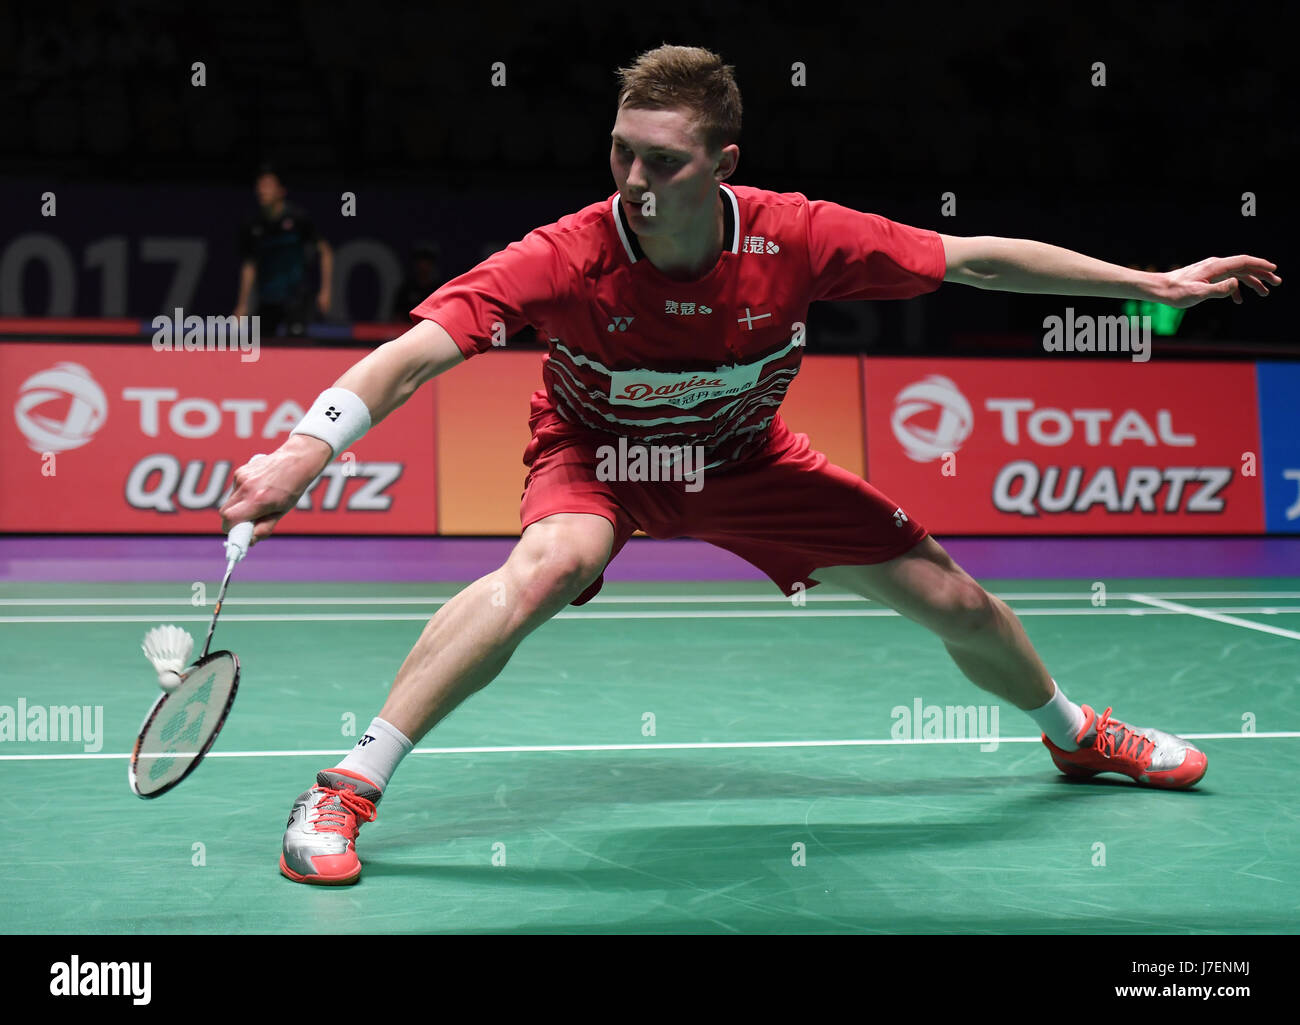 GOLD COAST May 24 2017 Xinhua Viktor Axelsen of